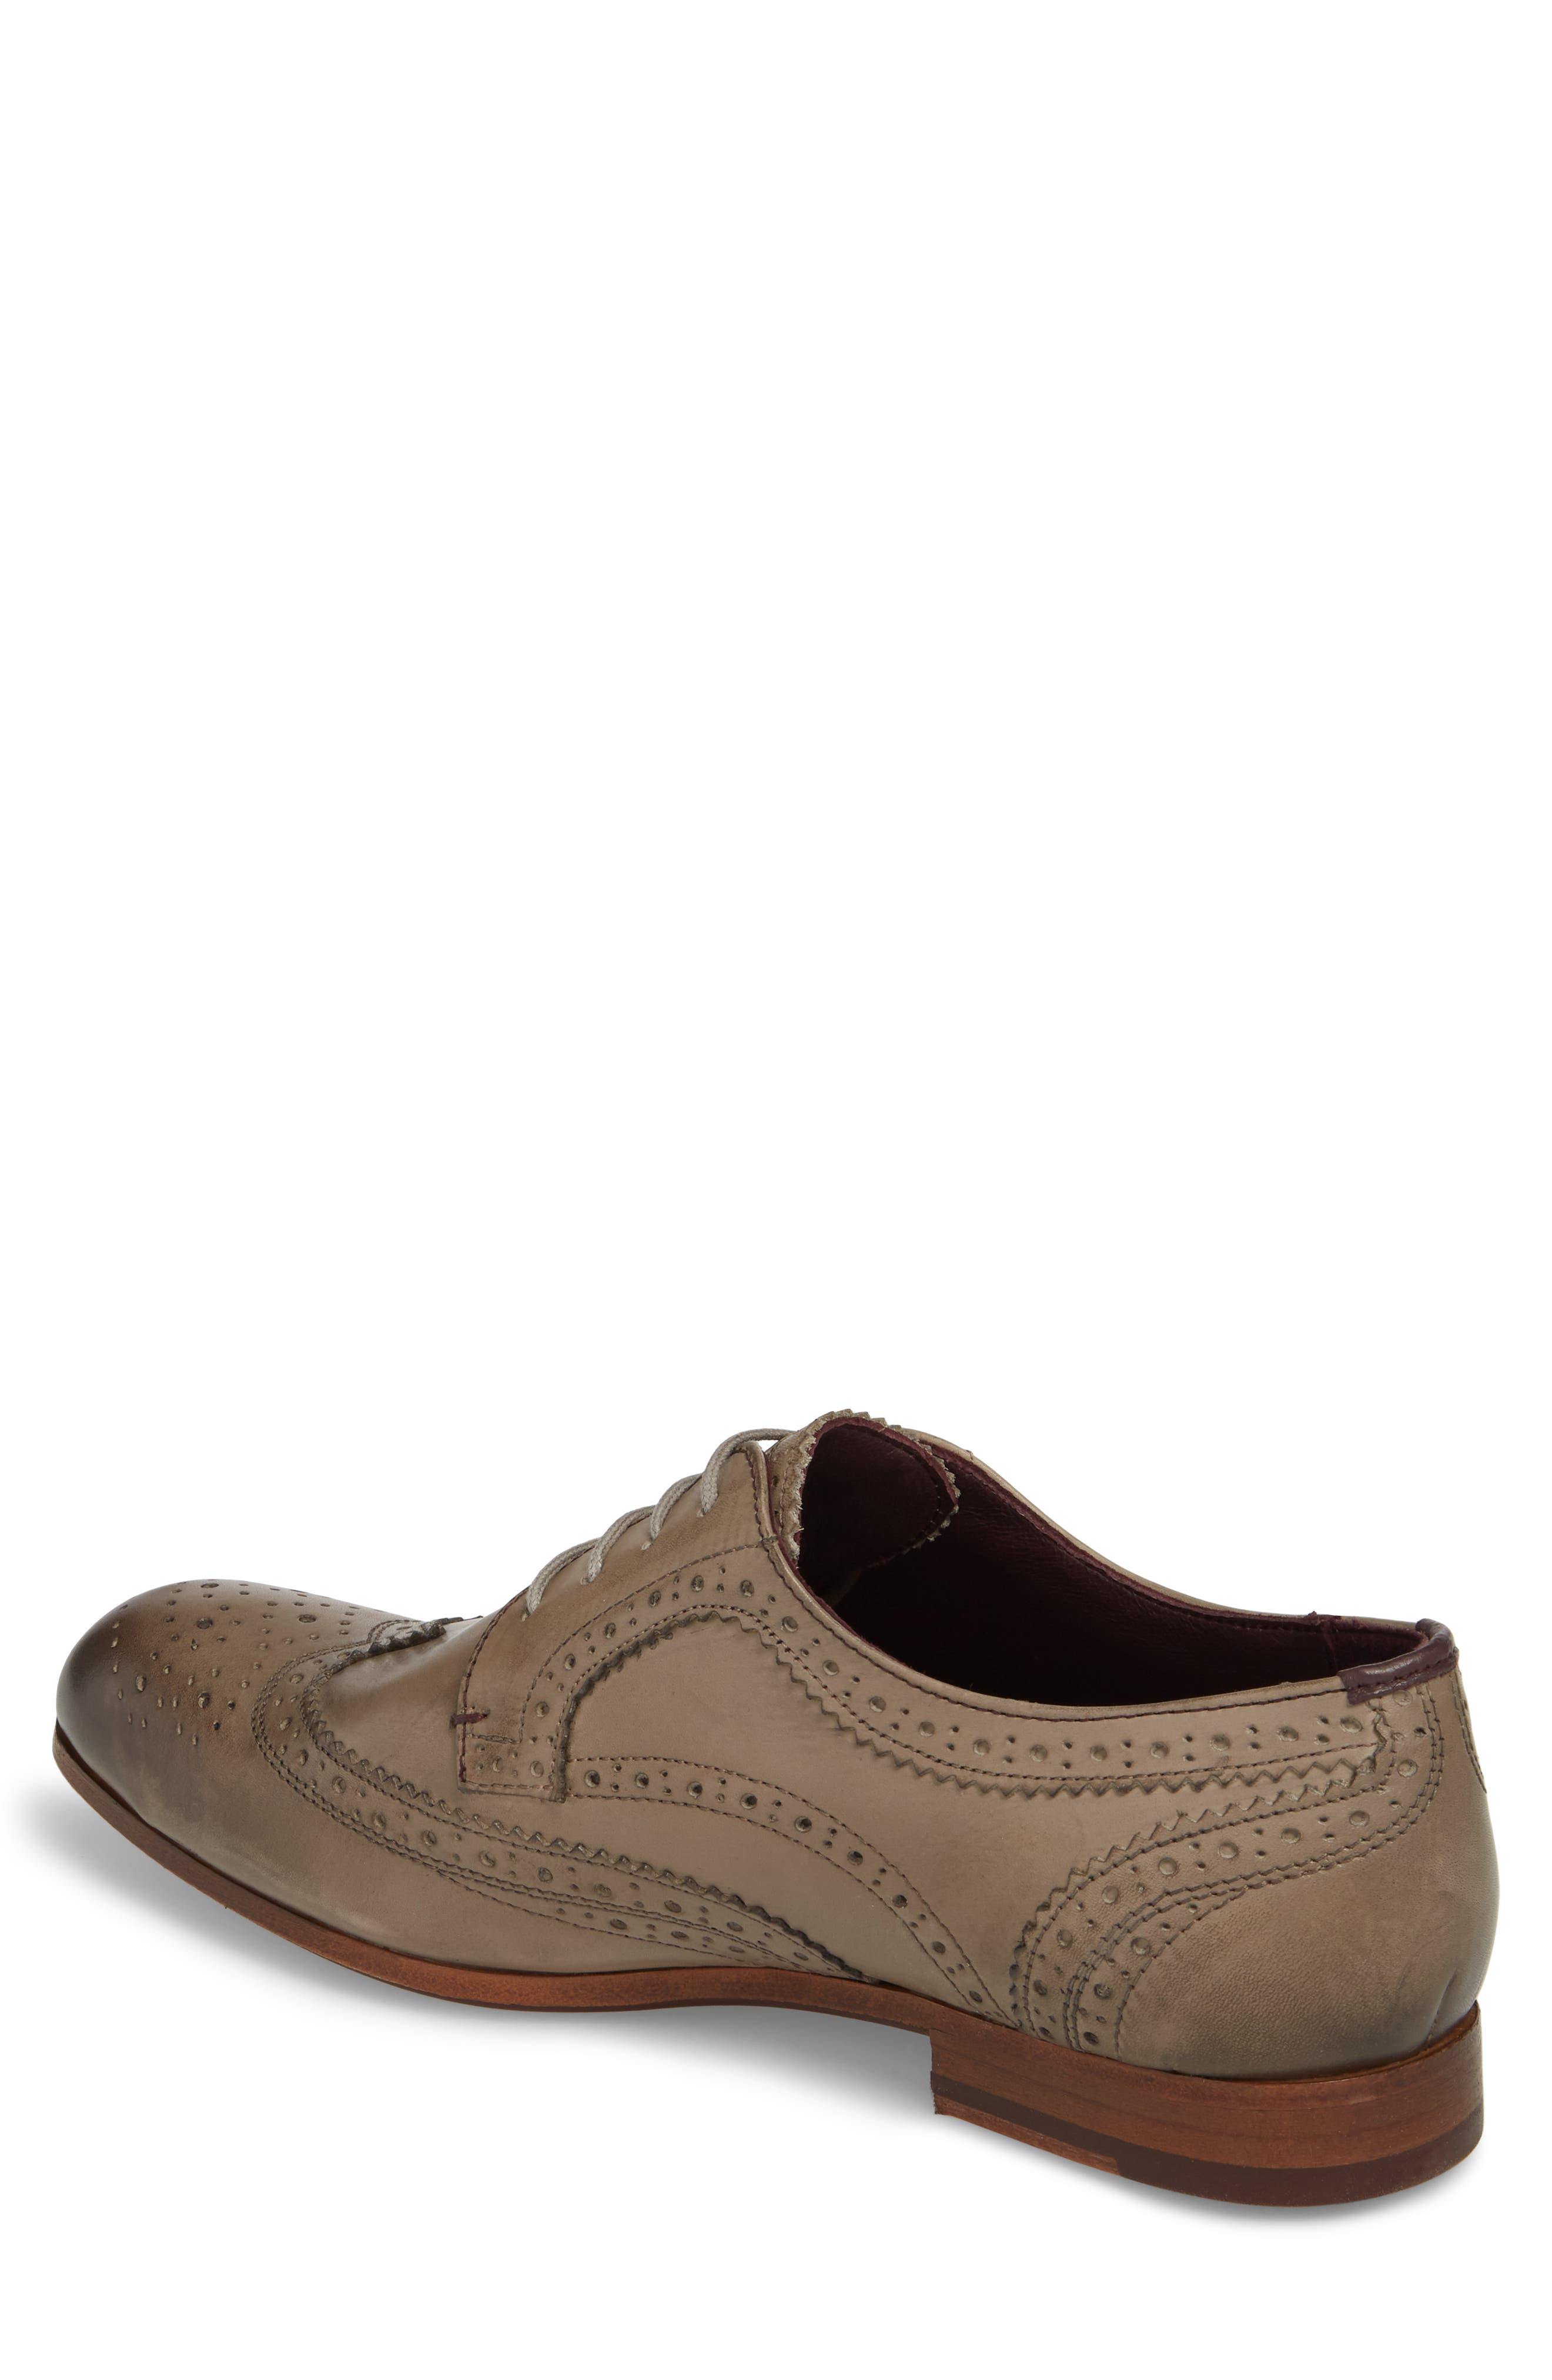 Granet Wingtip,                             Alternate thumbnail 2, color,                             Grey Leather